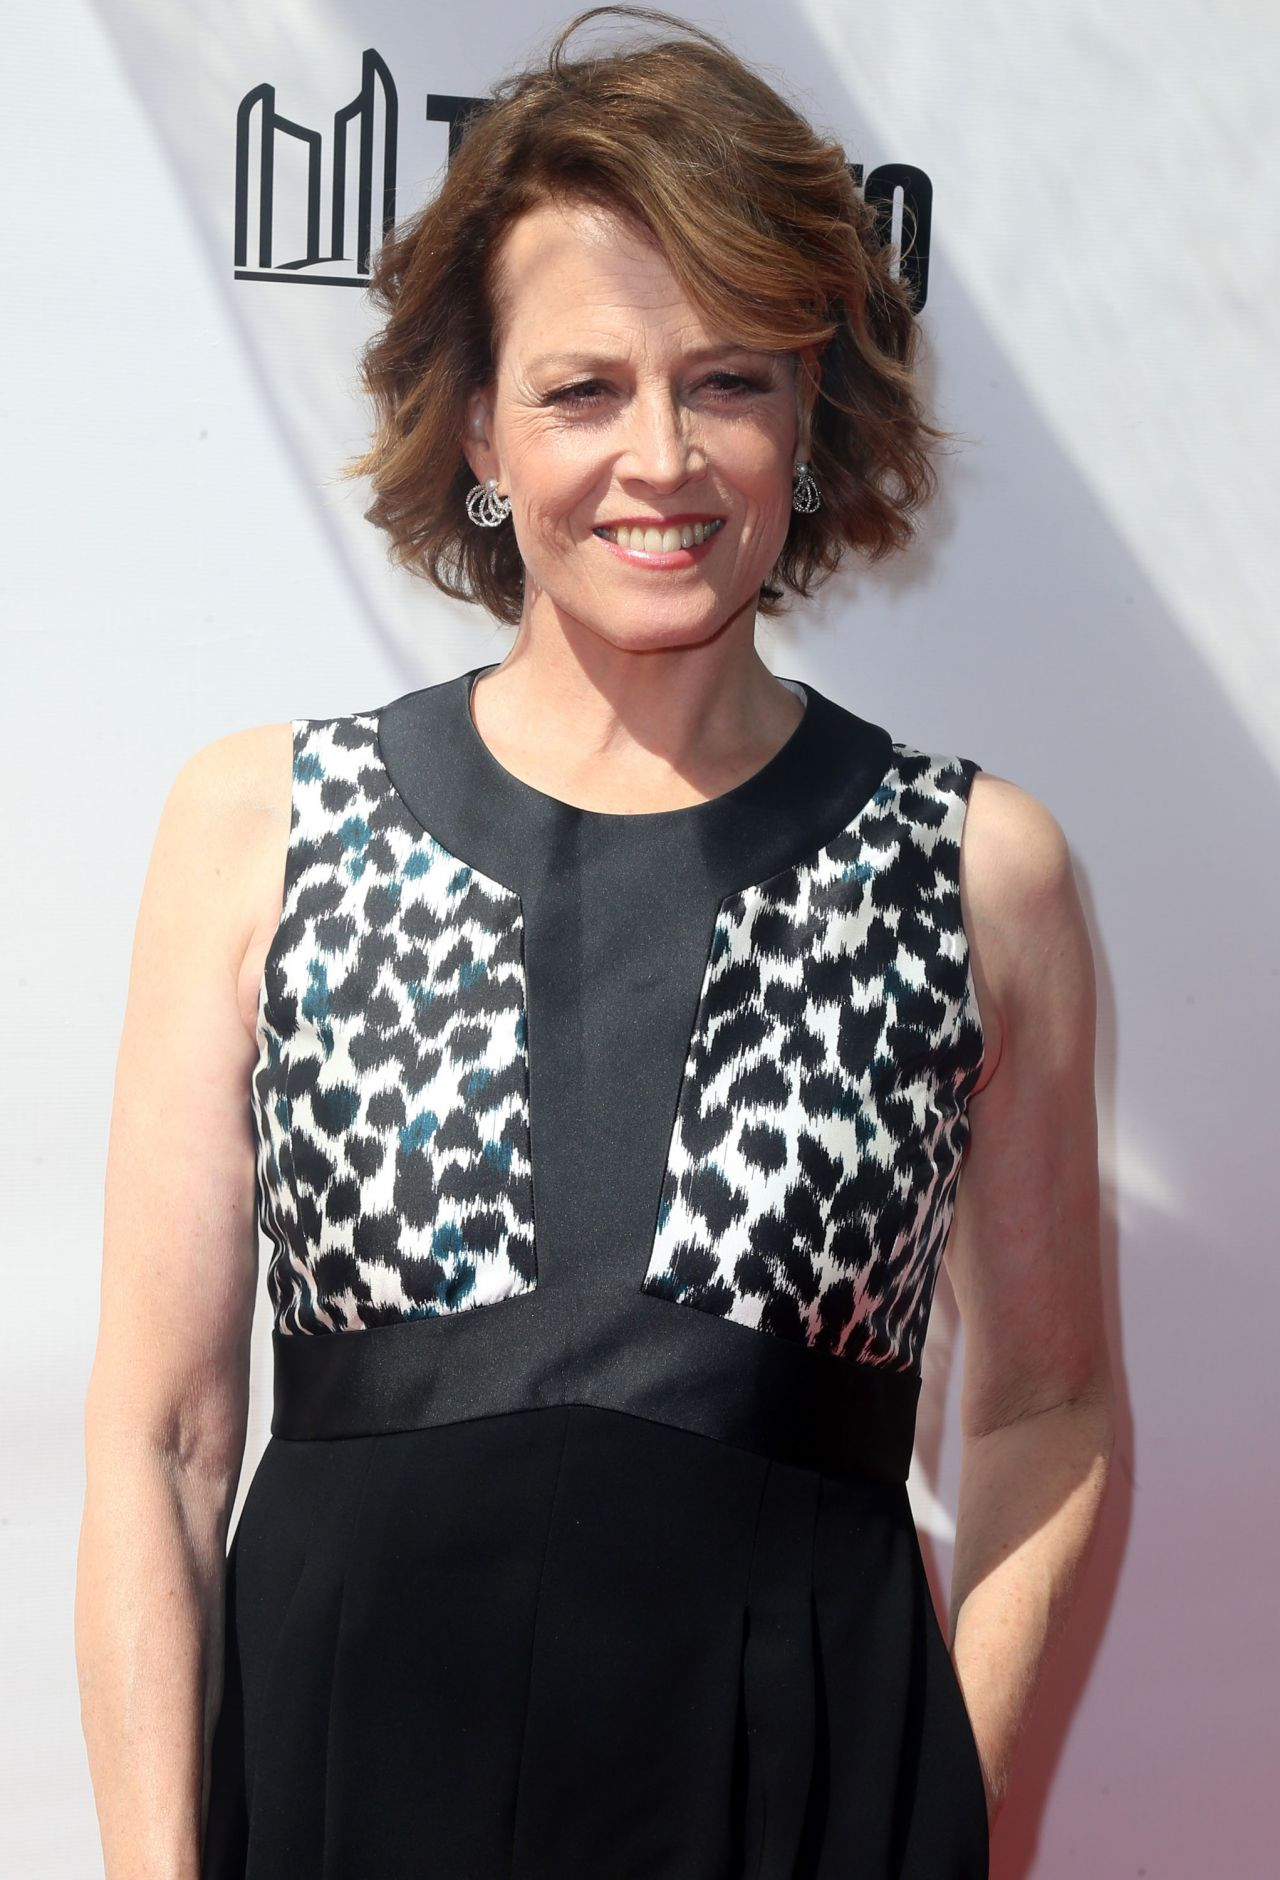 Sigourney Weaver Biography - Facts, Childhood, Family Life